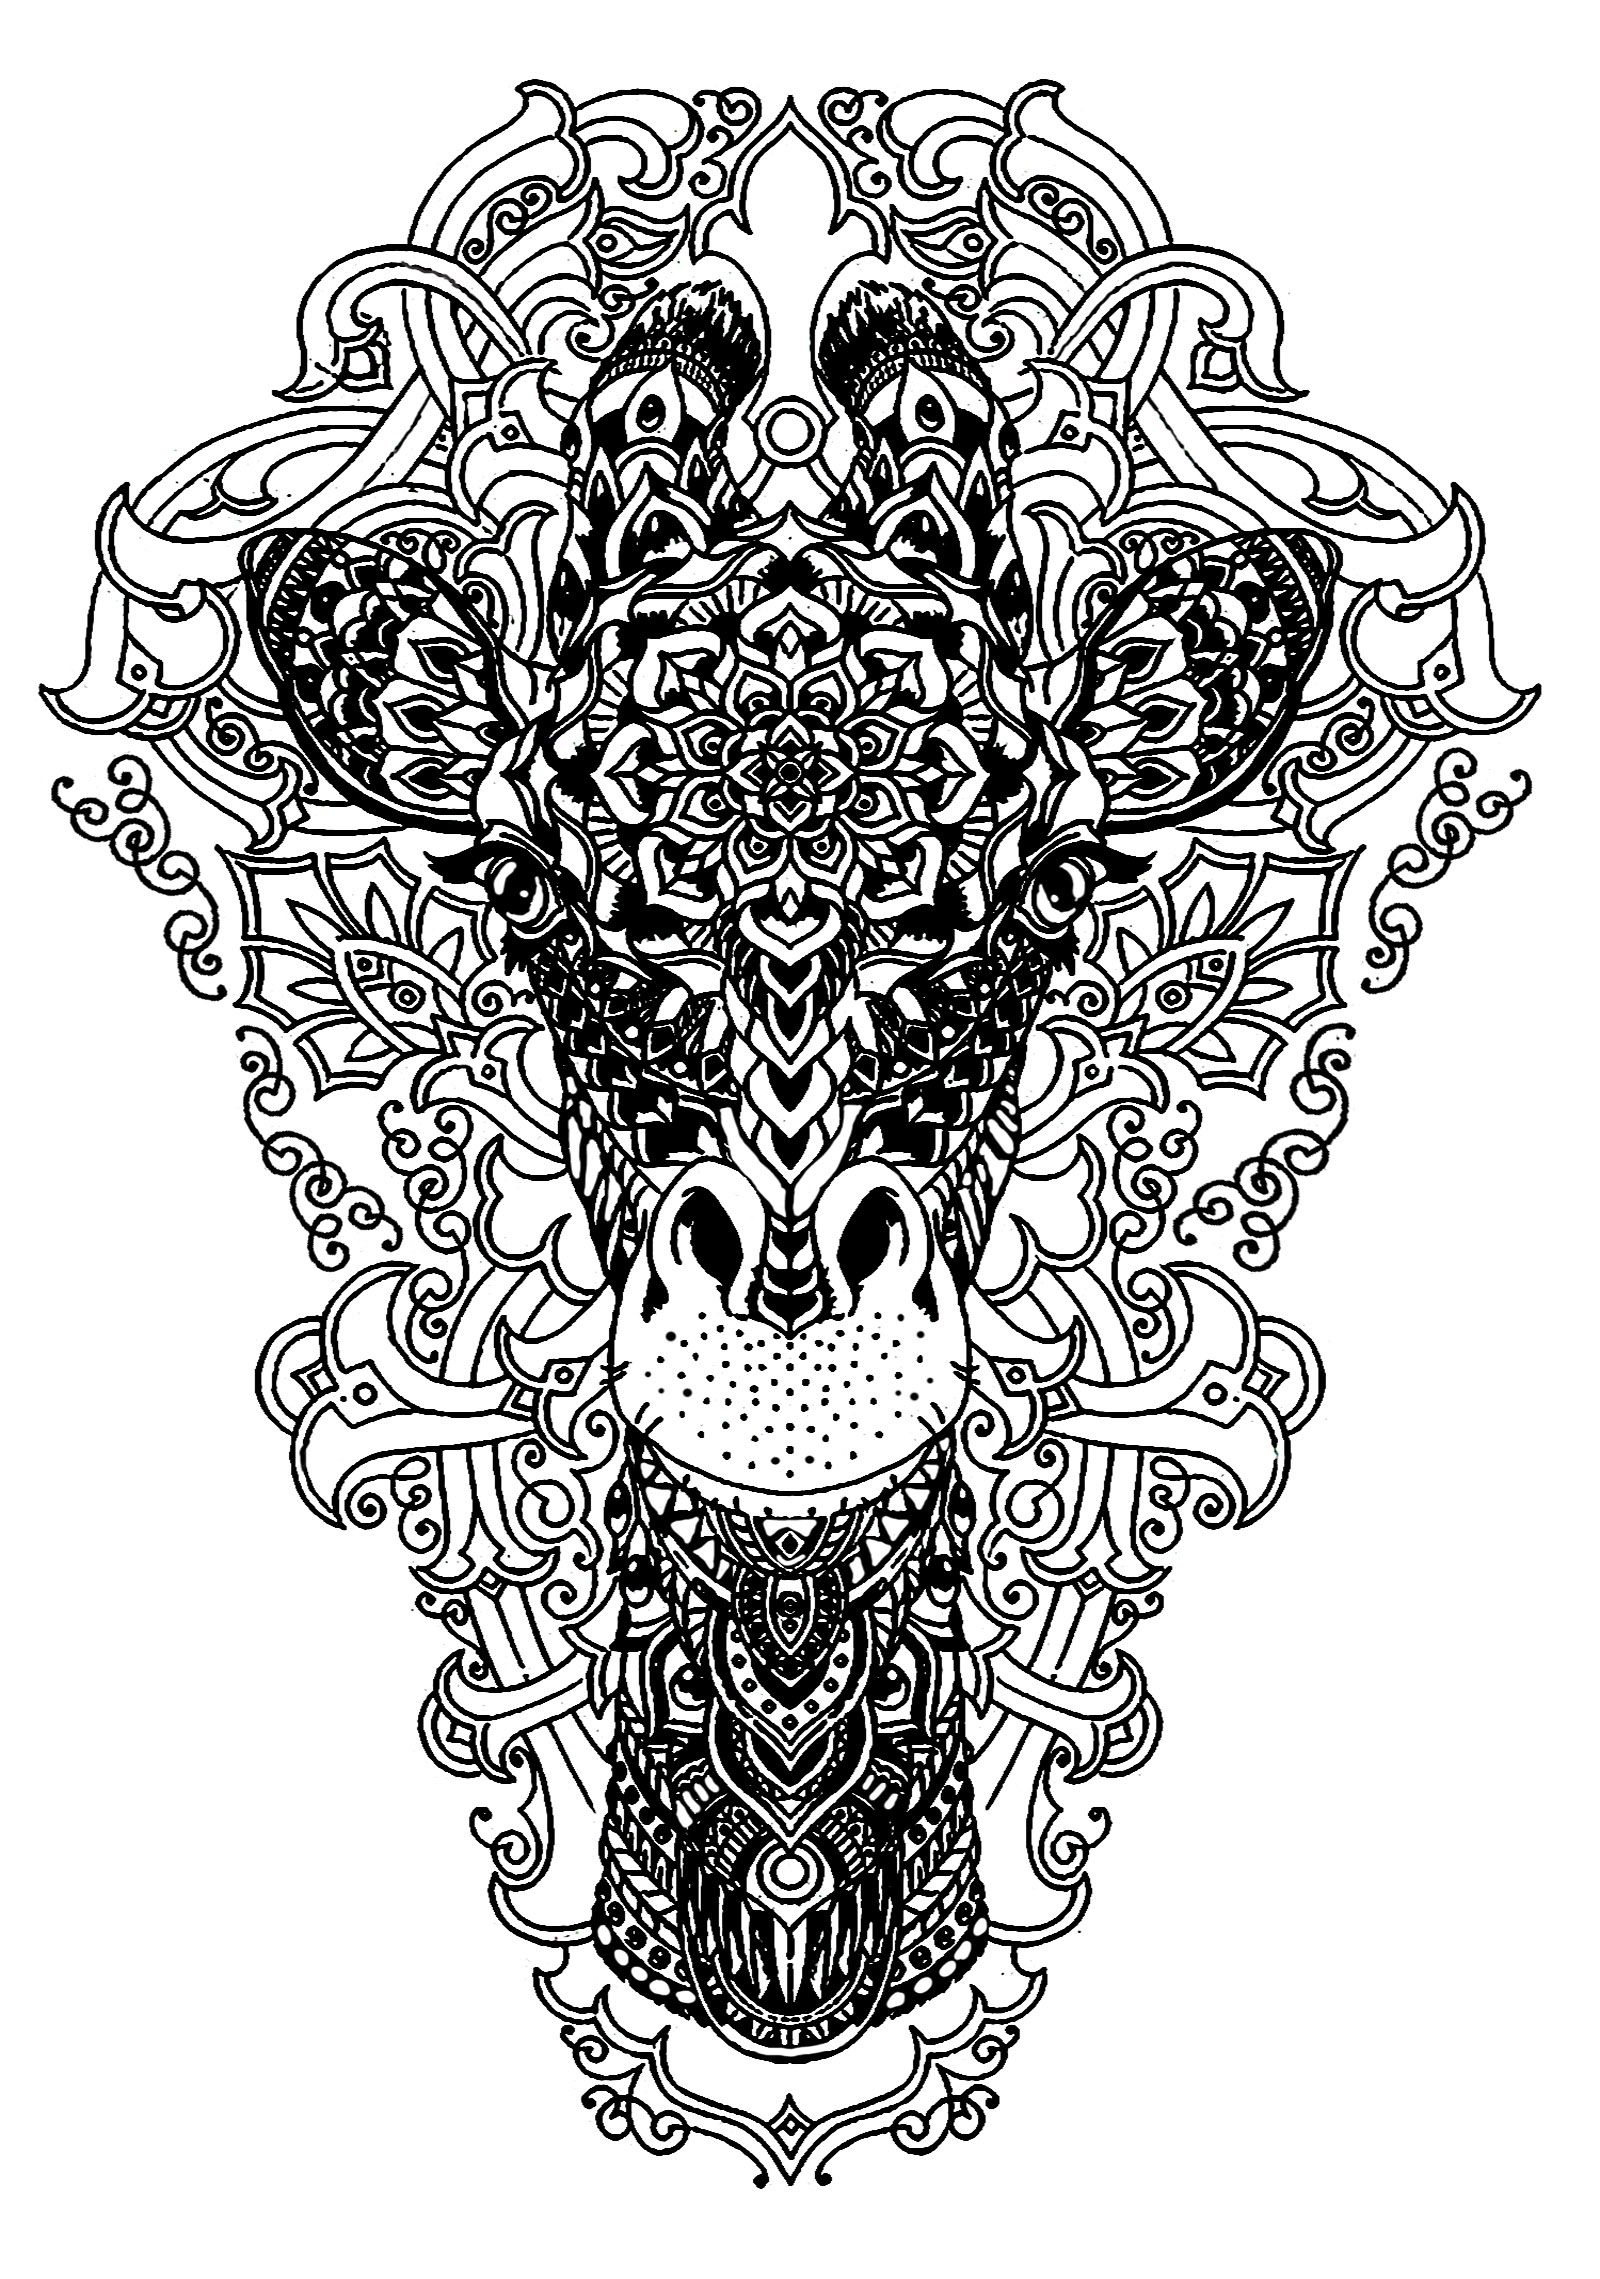 Here Are Complex Coloring Pages For Adults Of Animals Different Levels Of Details And Styl Giraffe Coloring Pages Animal Coloring Pages Mandala Coloring Pages